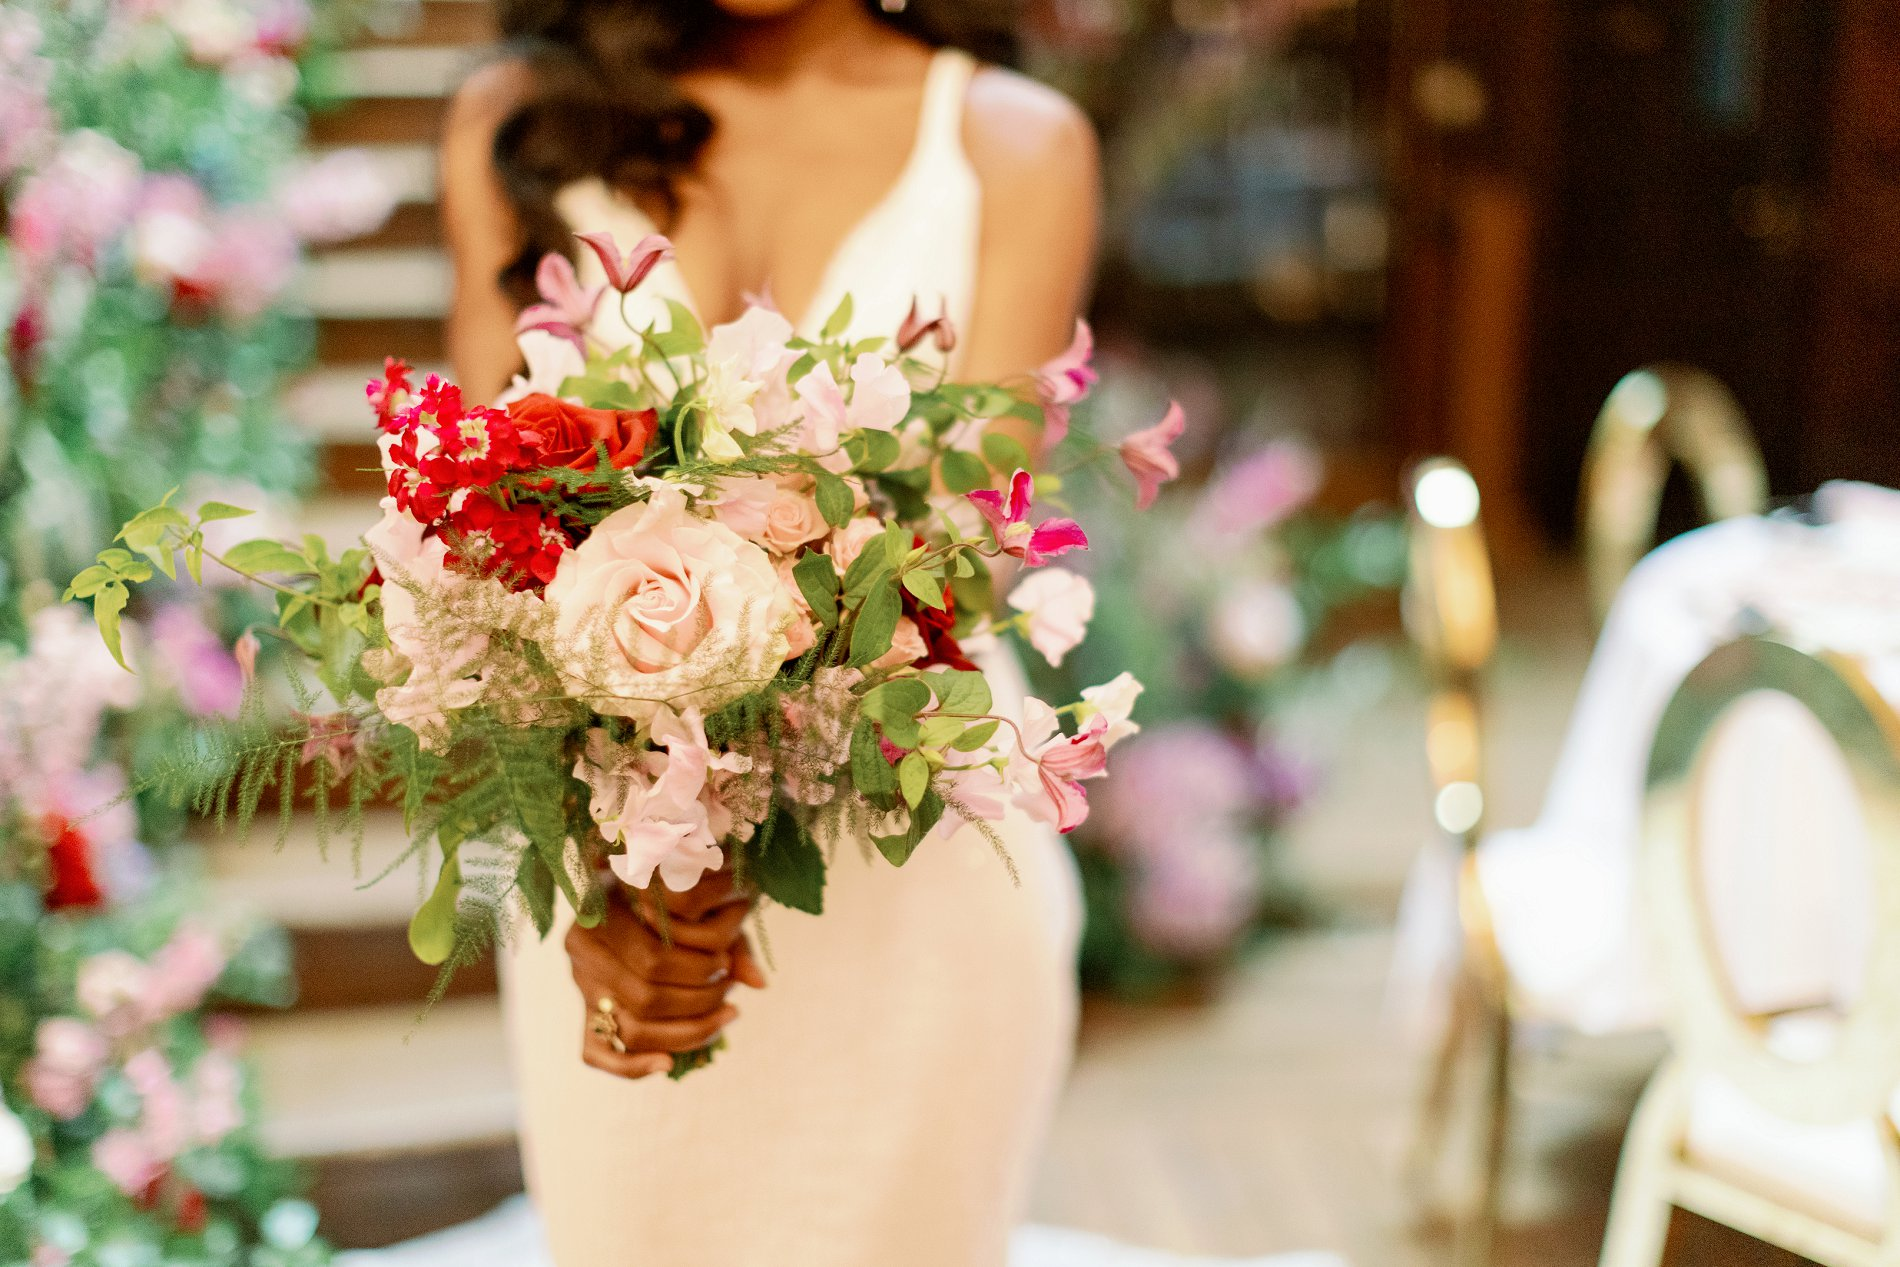 Forever Yours Styled Shoot (c) Camilla J. Hards and Courtney Dee Photography (32)